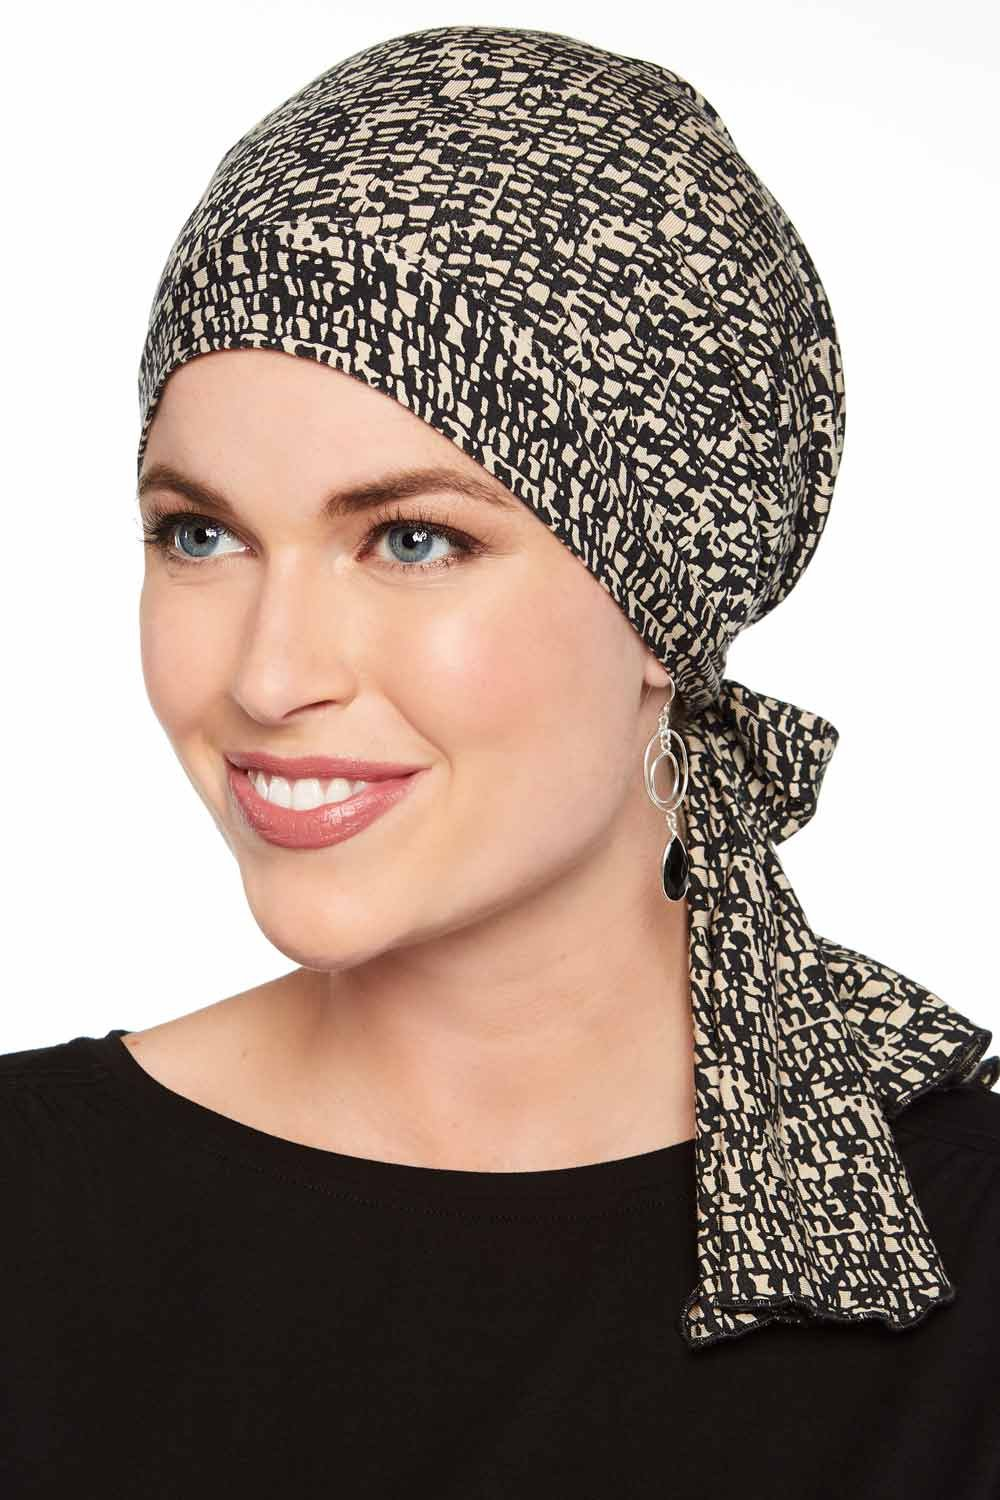 Cardani So Simple Scarf - Pre Tied Head Scarf for Women in Soft Bamboo - Cancer & Chemo Patients Luxury Bamboo - Mini Mosaic Black/Beige